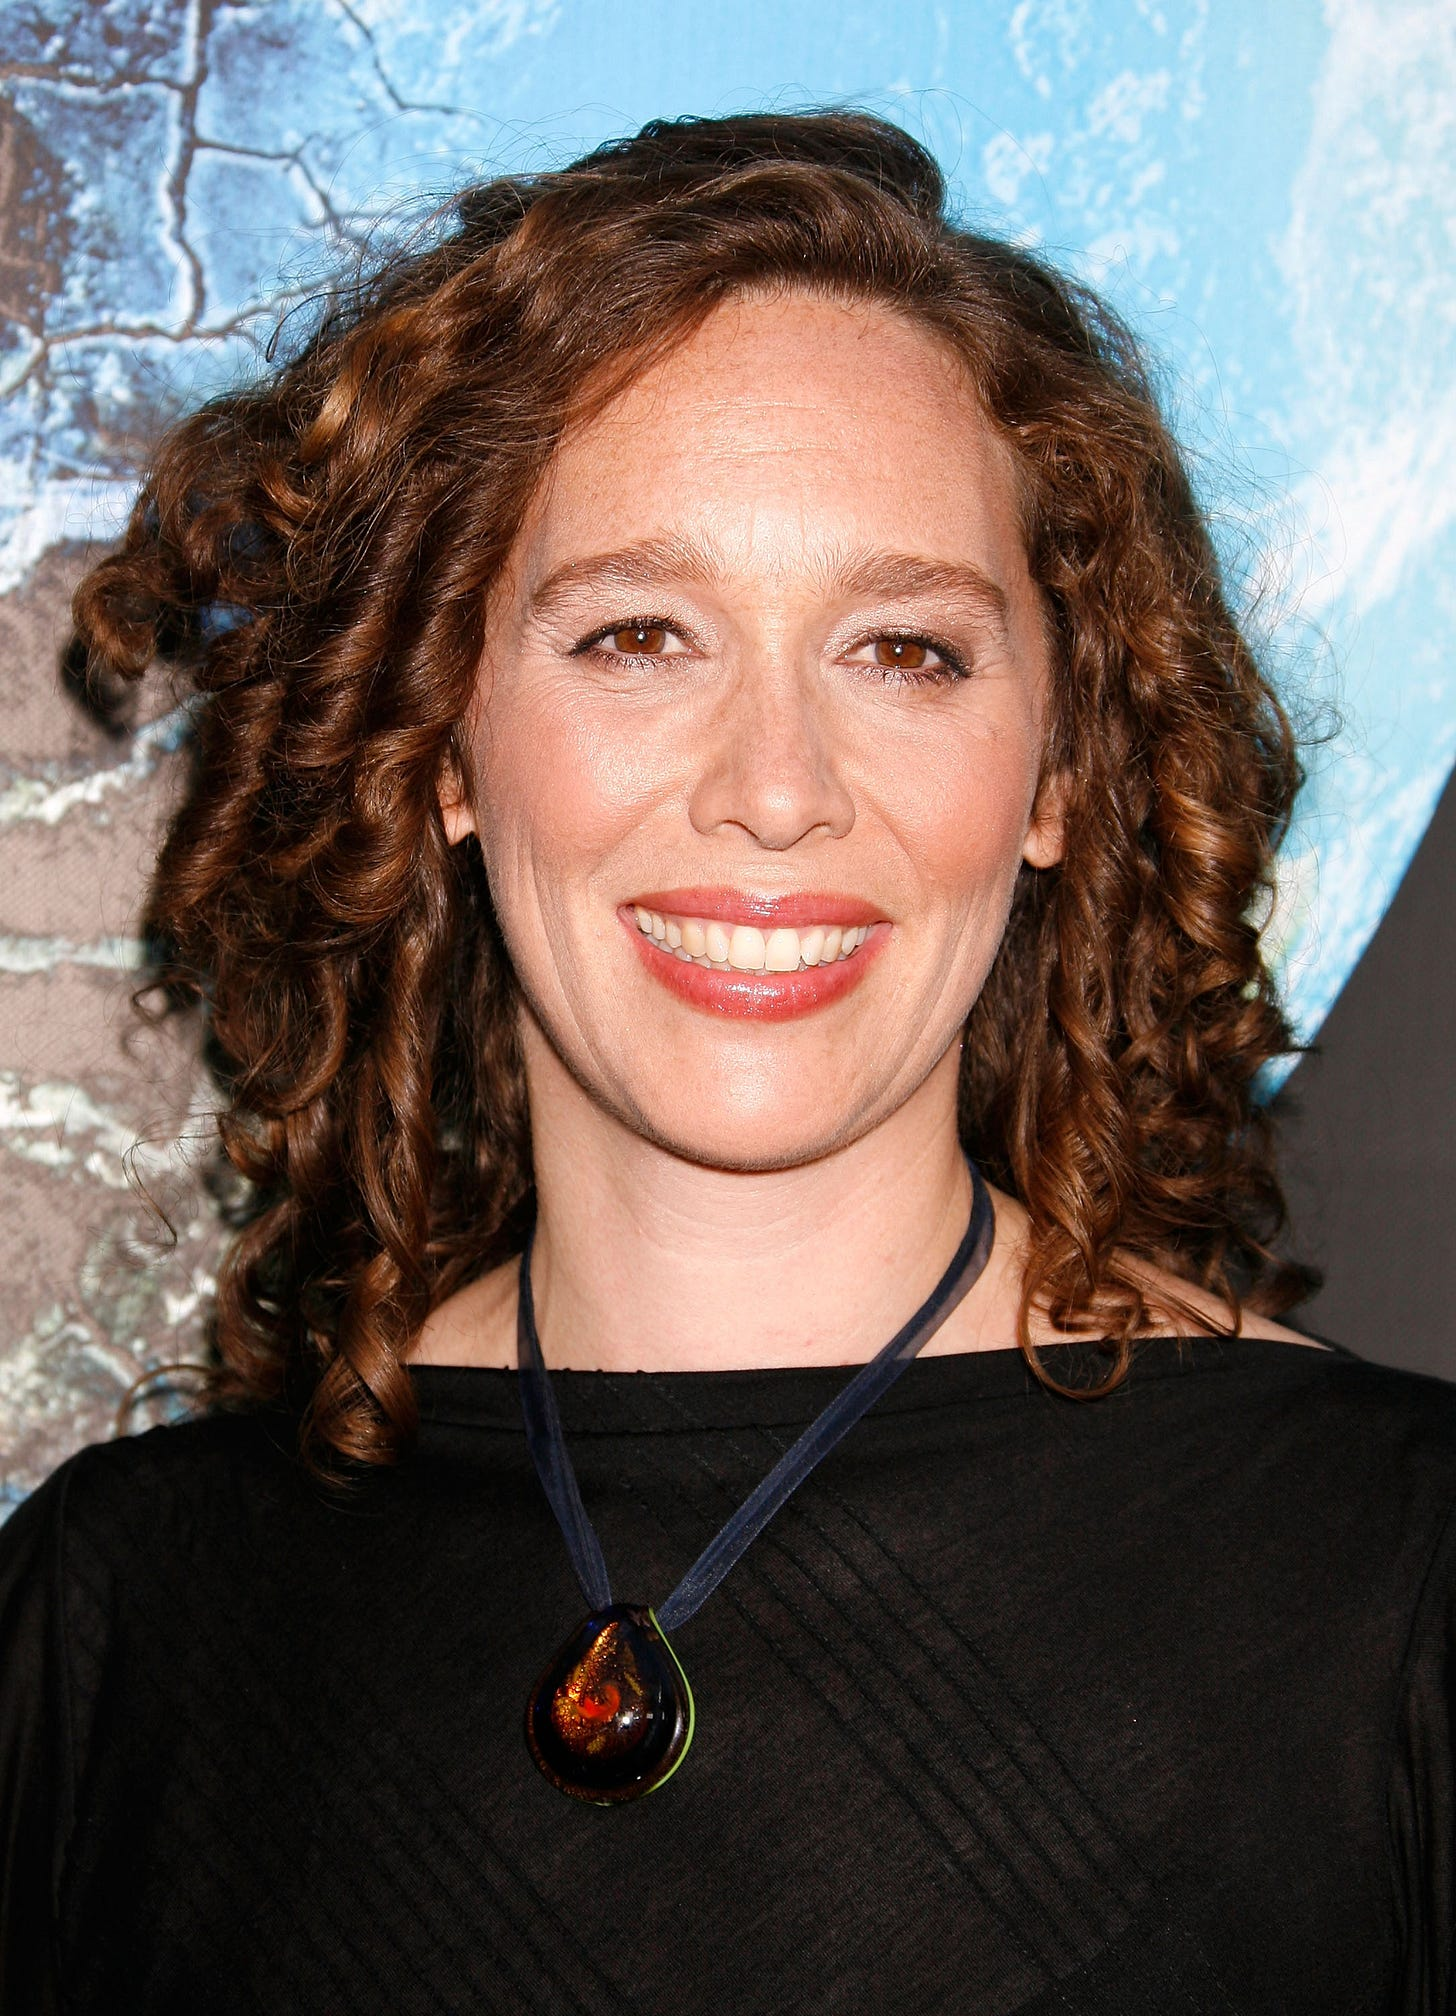 Tzeporah Berman at the Hollywood premiere of The 11th Hour, in which she was featured, on August 8, 2007. (Photo: Getty Images)